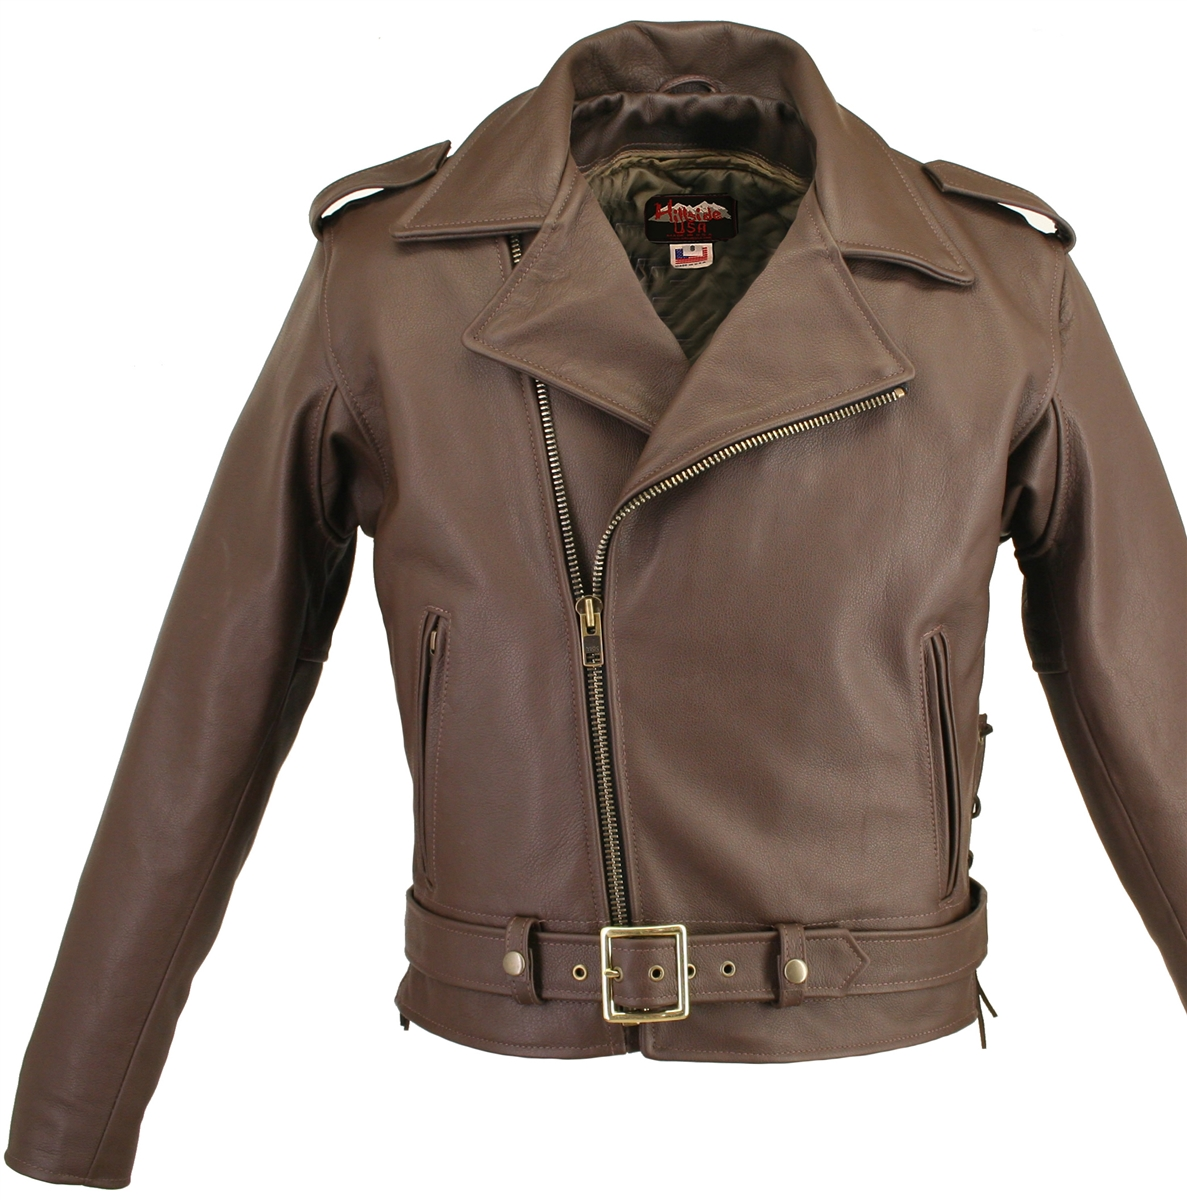 Buy Brown Biker Jackets for Men. Men's Brown Biker Jackets With Custom Made to Measure Option. Free Shipping In USA, UK, Canada, Australia & World Wide. Buy Brown Biker Jackets for Men. Men's Brown Biker Jackets With Custom Made to Measure Option. Free Shipping In USA, UK, Canada, Australia & World Wide.